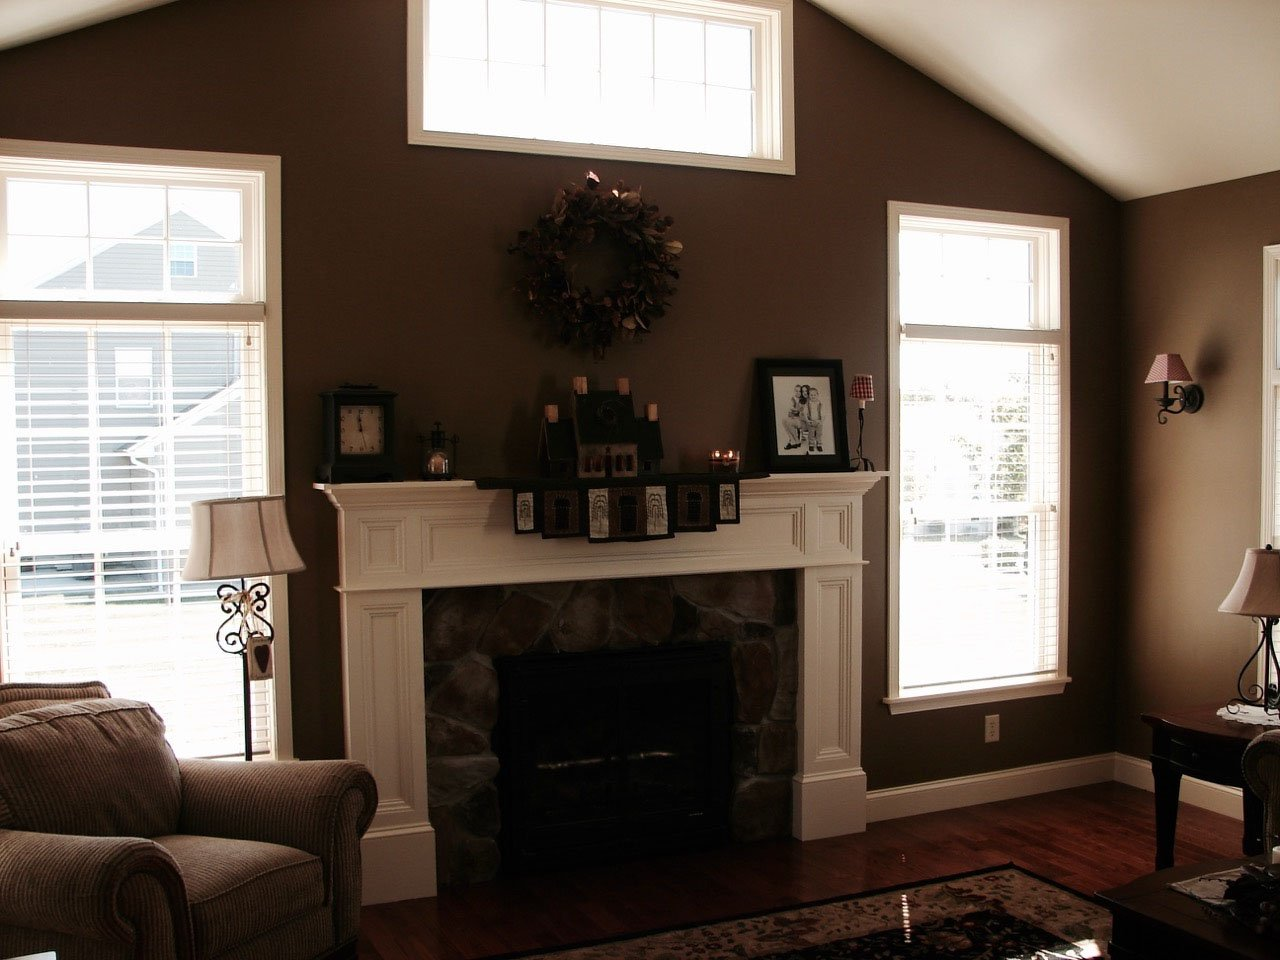 northstar building services inc photo gallery boyertown